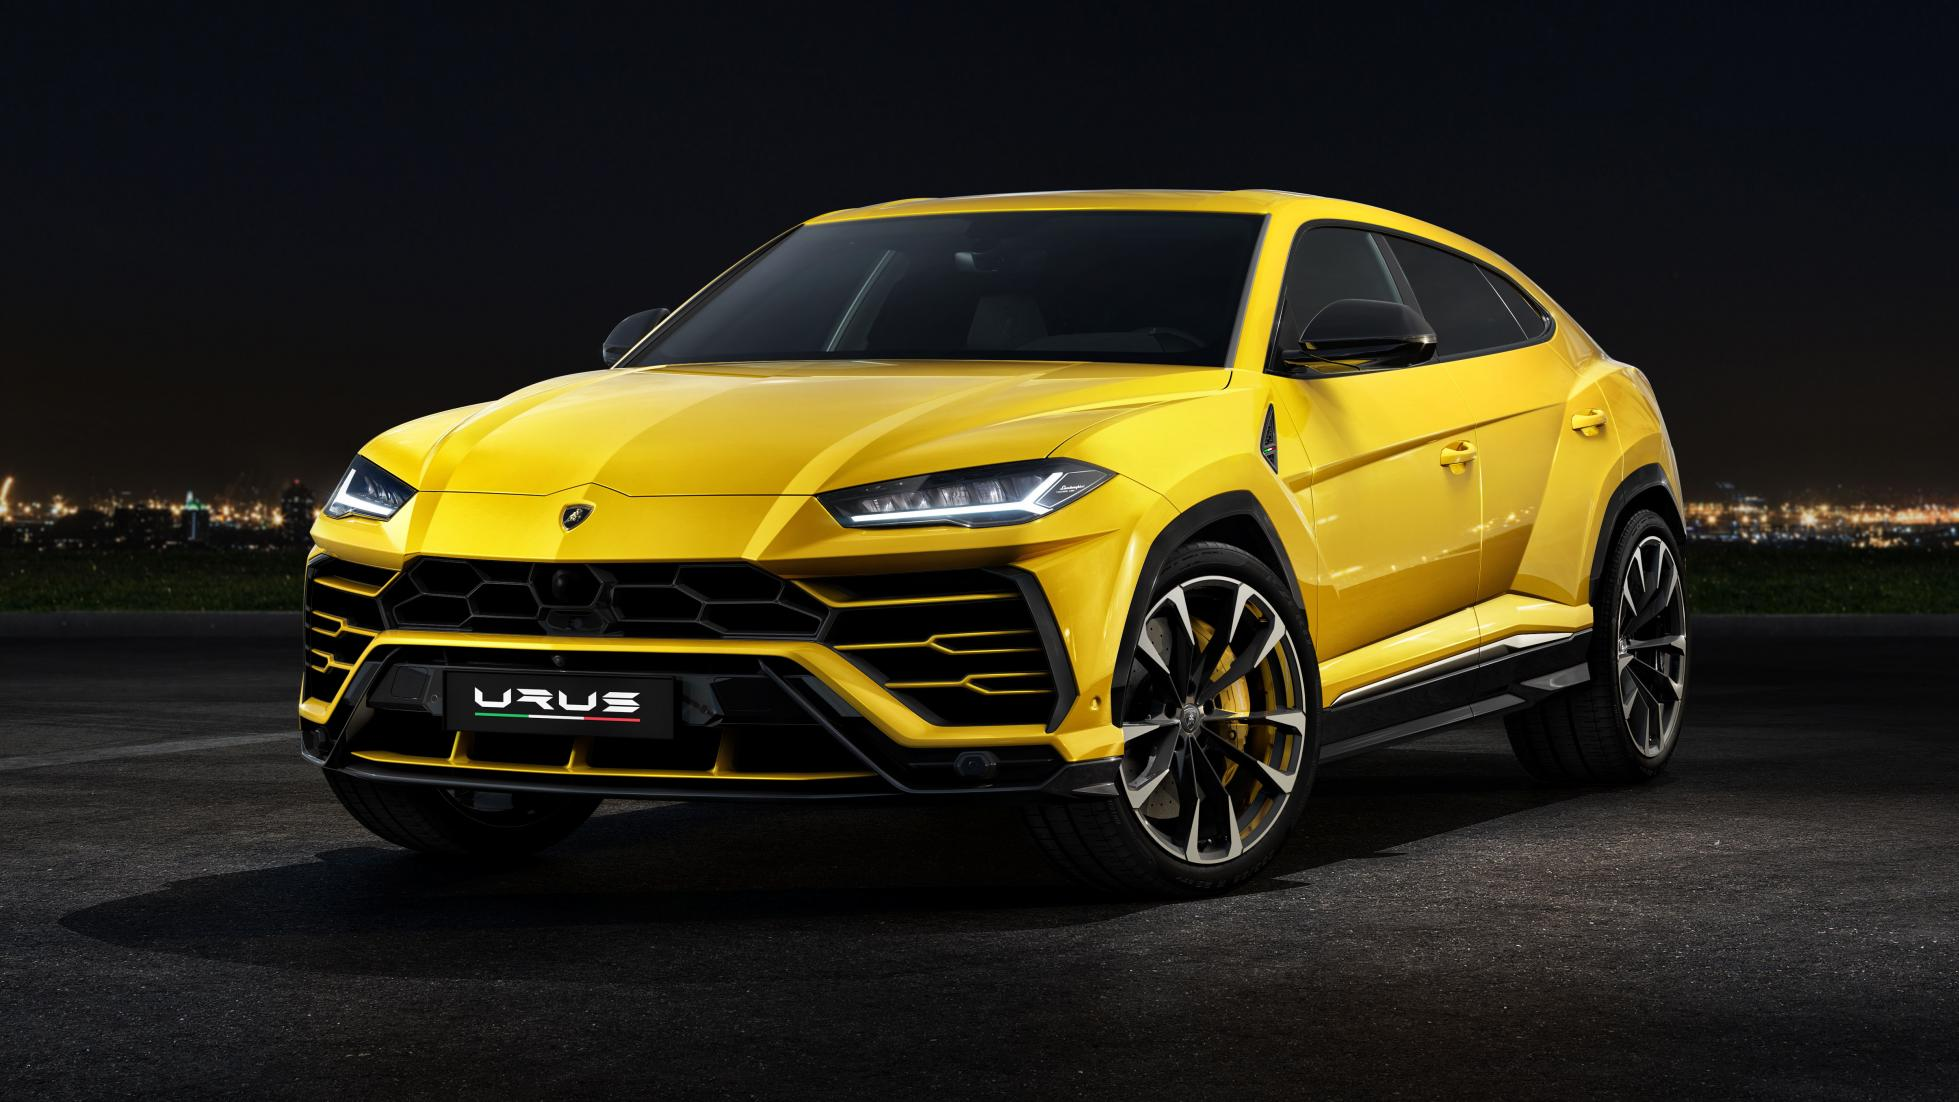 Lamborghini S Stunning Urus Is The Most Powerful Suv Ever Trusted